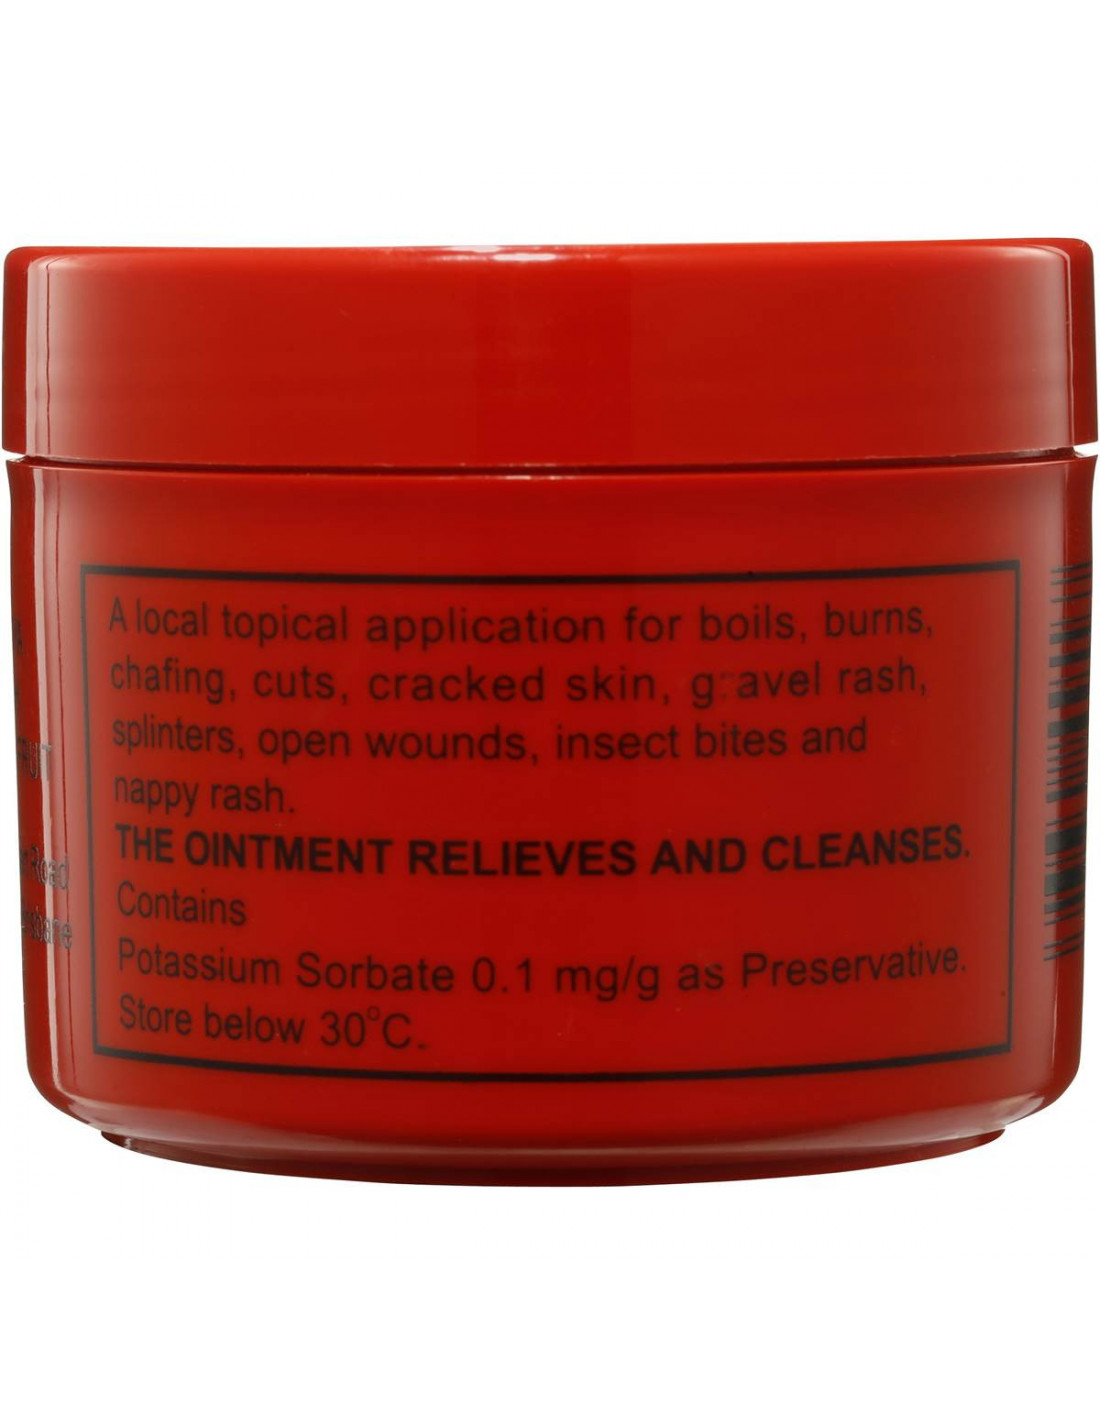 Lucas Lip Care Paw Paw Ointment 75g | Ally's Basket - Direct